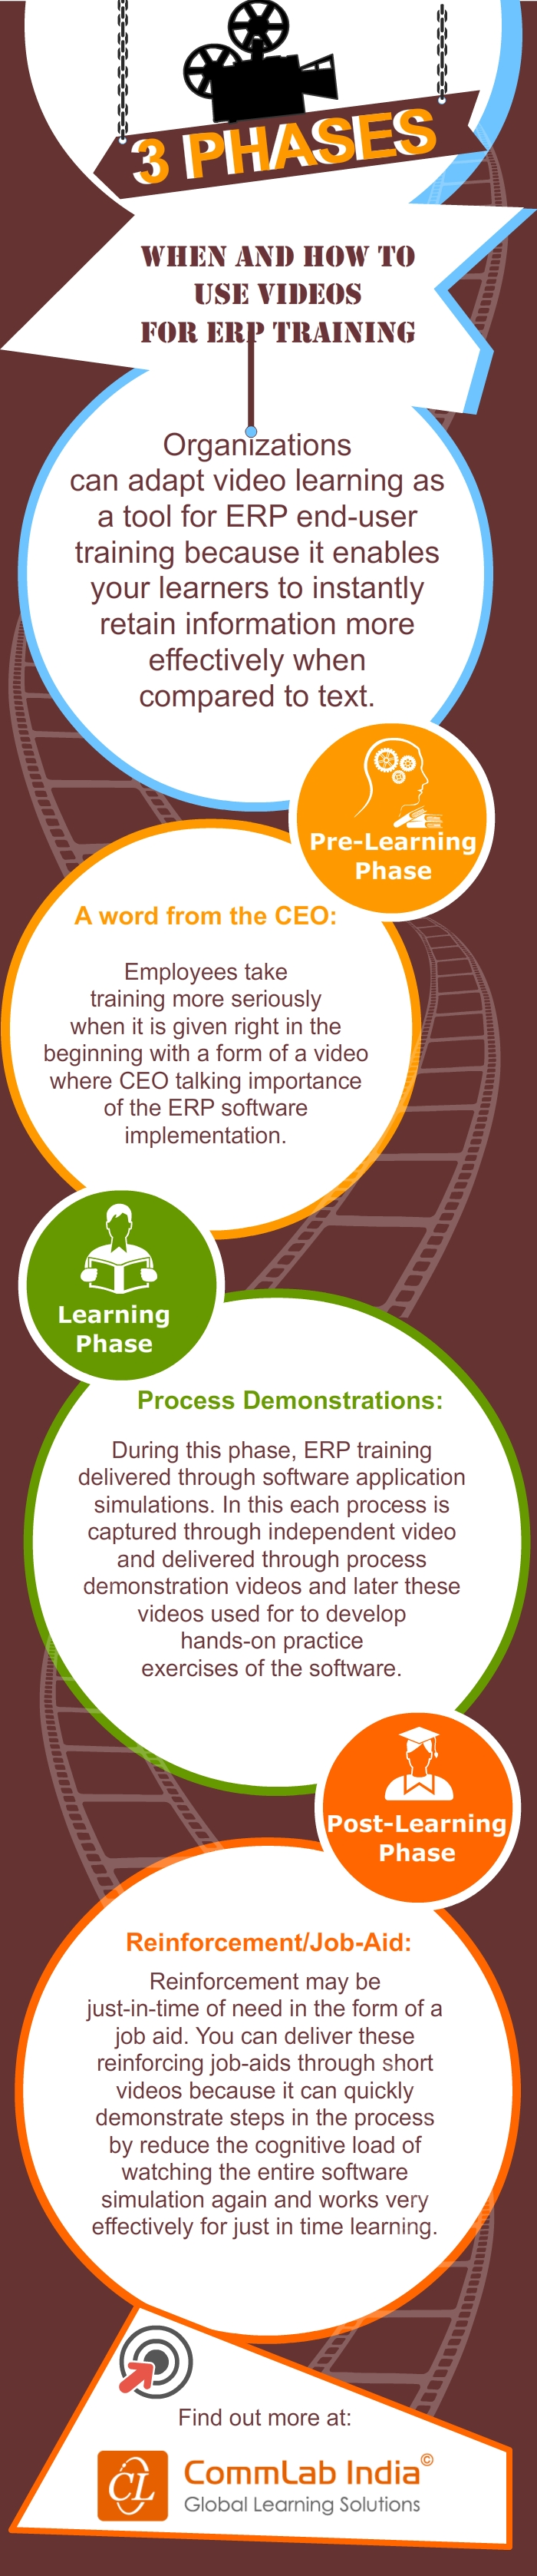 3 Phases When And How To Use Videos For ERP Training [Infographic]